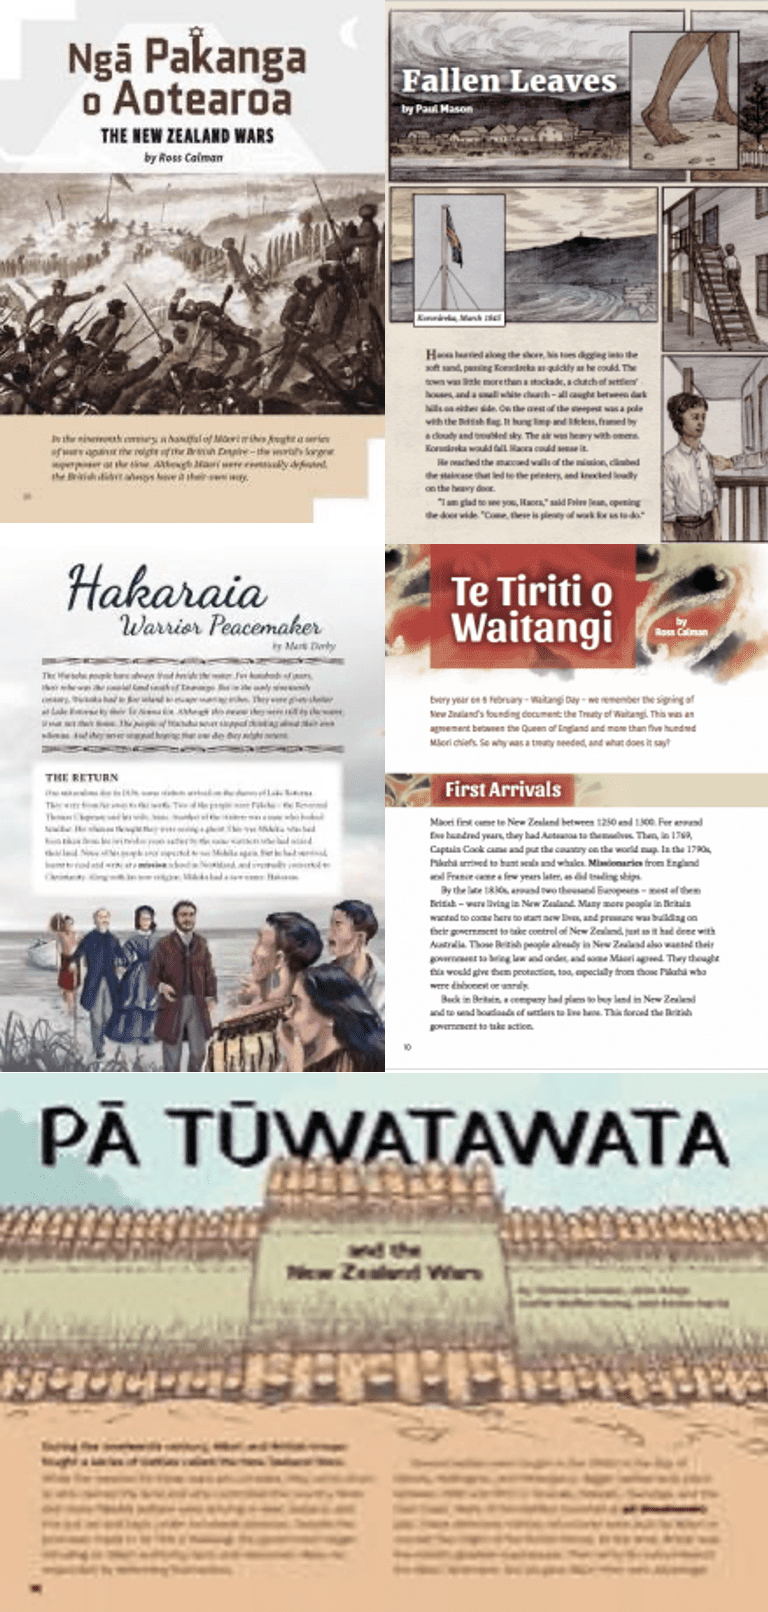 New Zealand Wars School Journal Articles. The New Zealand Wars Resources and Activities. This blog post highlights a range of New Zealand Wars Teaching Resources and Activities to help you to introduce and explore this part of New Zealand's history with your students.